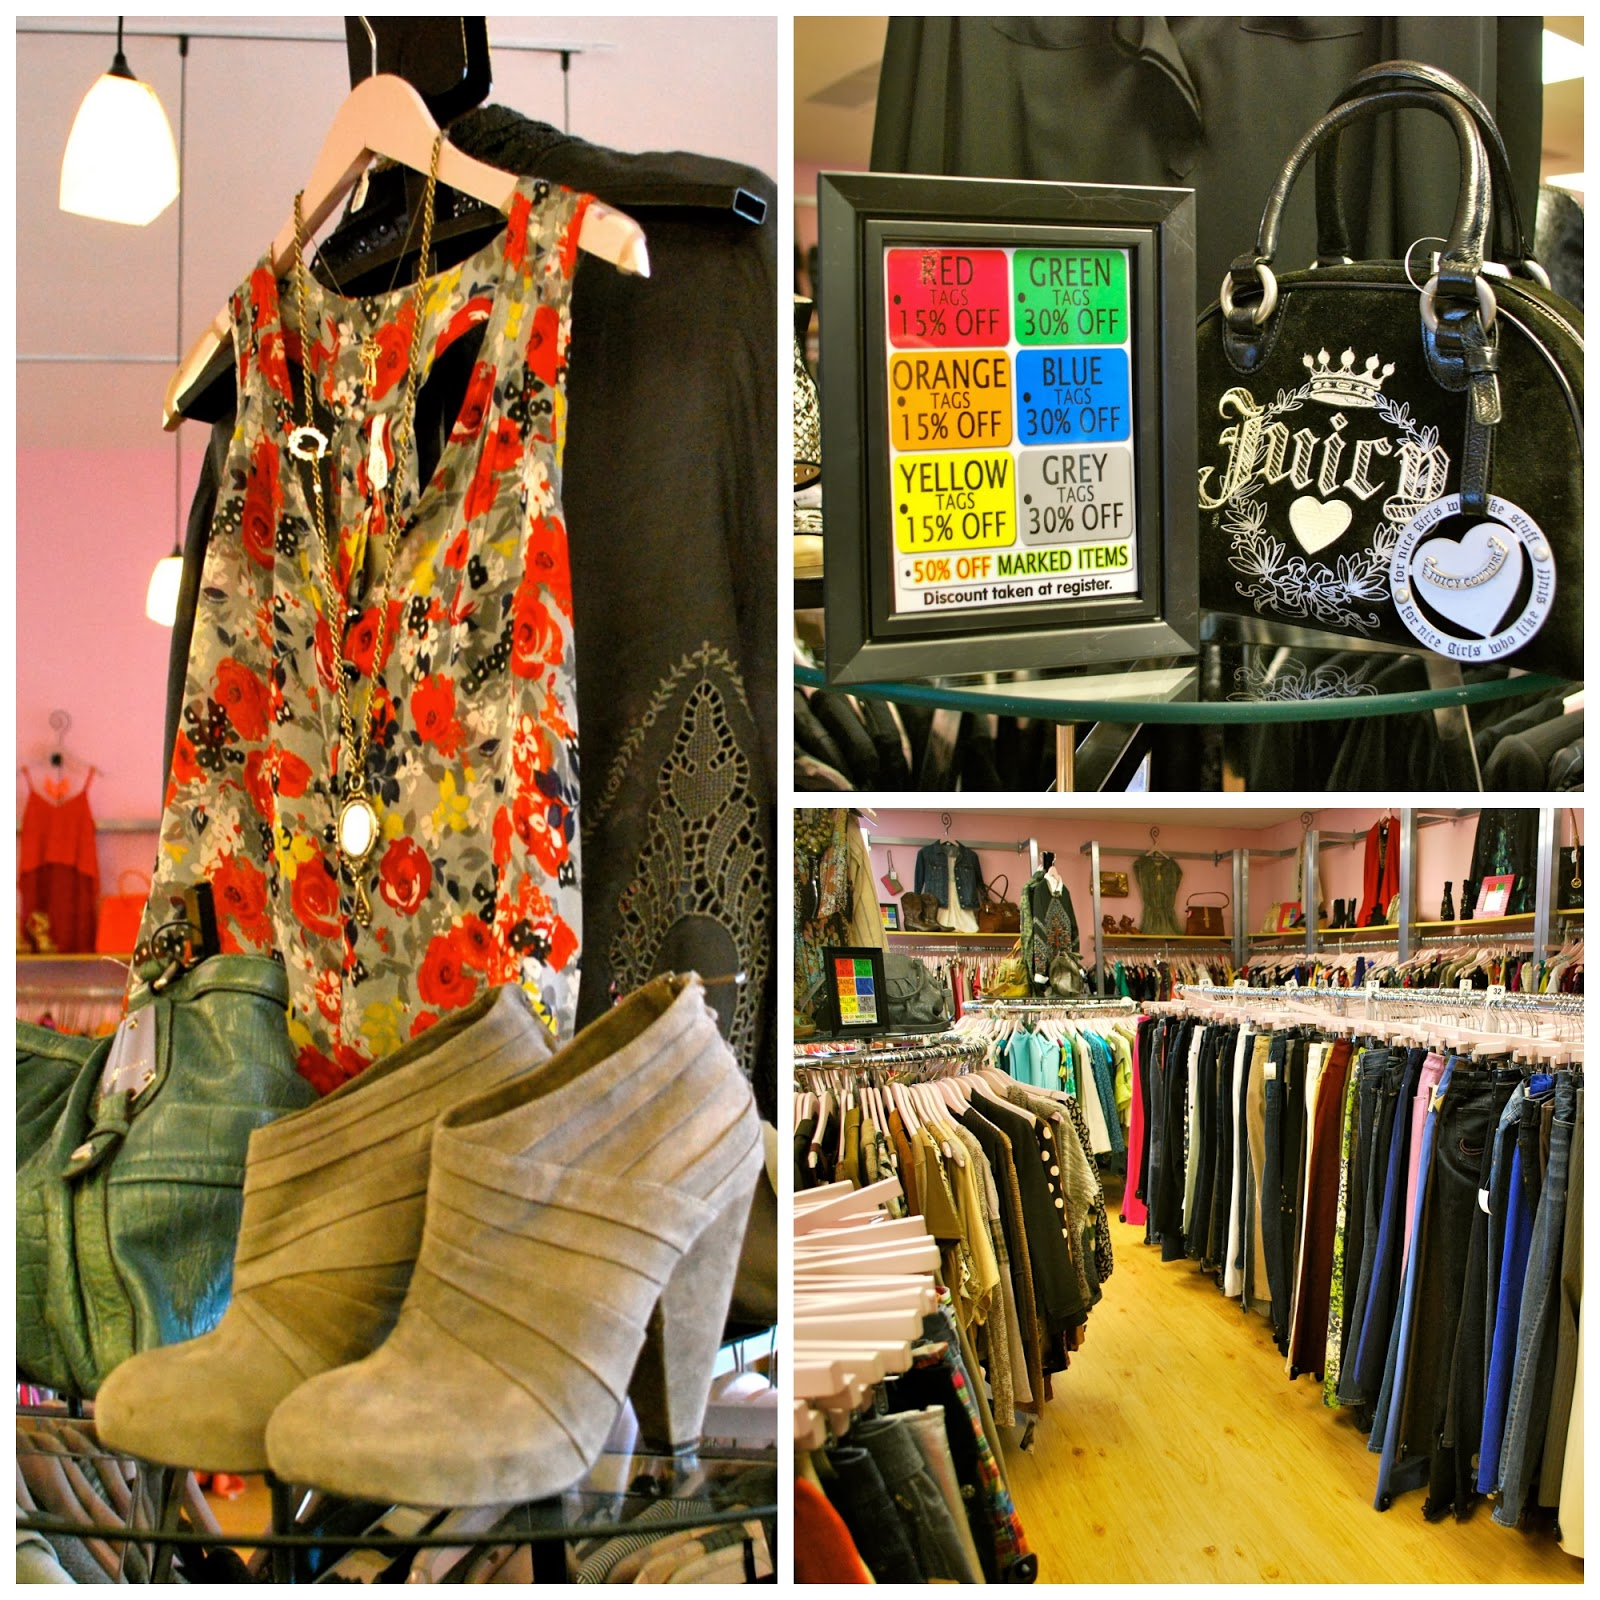 Design Stores Online: Atlanta Consignment Stores: Alexis' Suitcase Is Packed